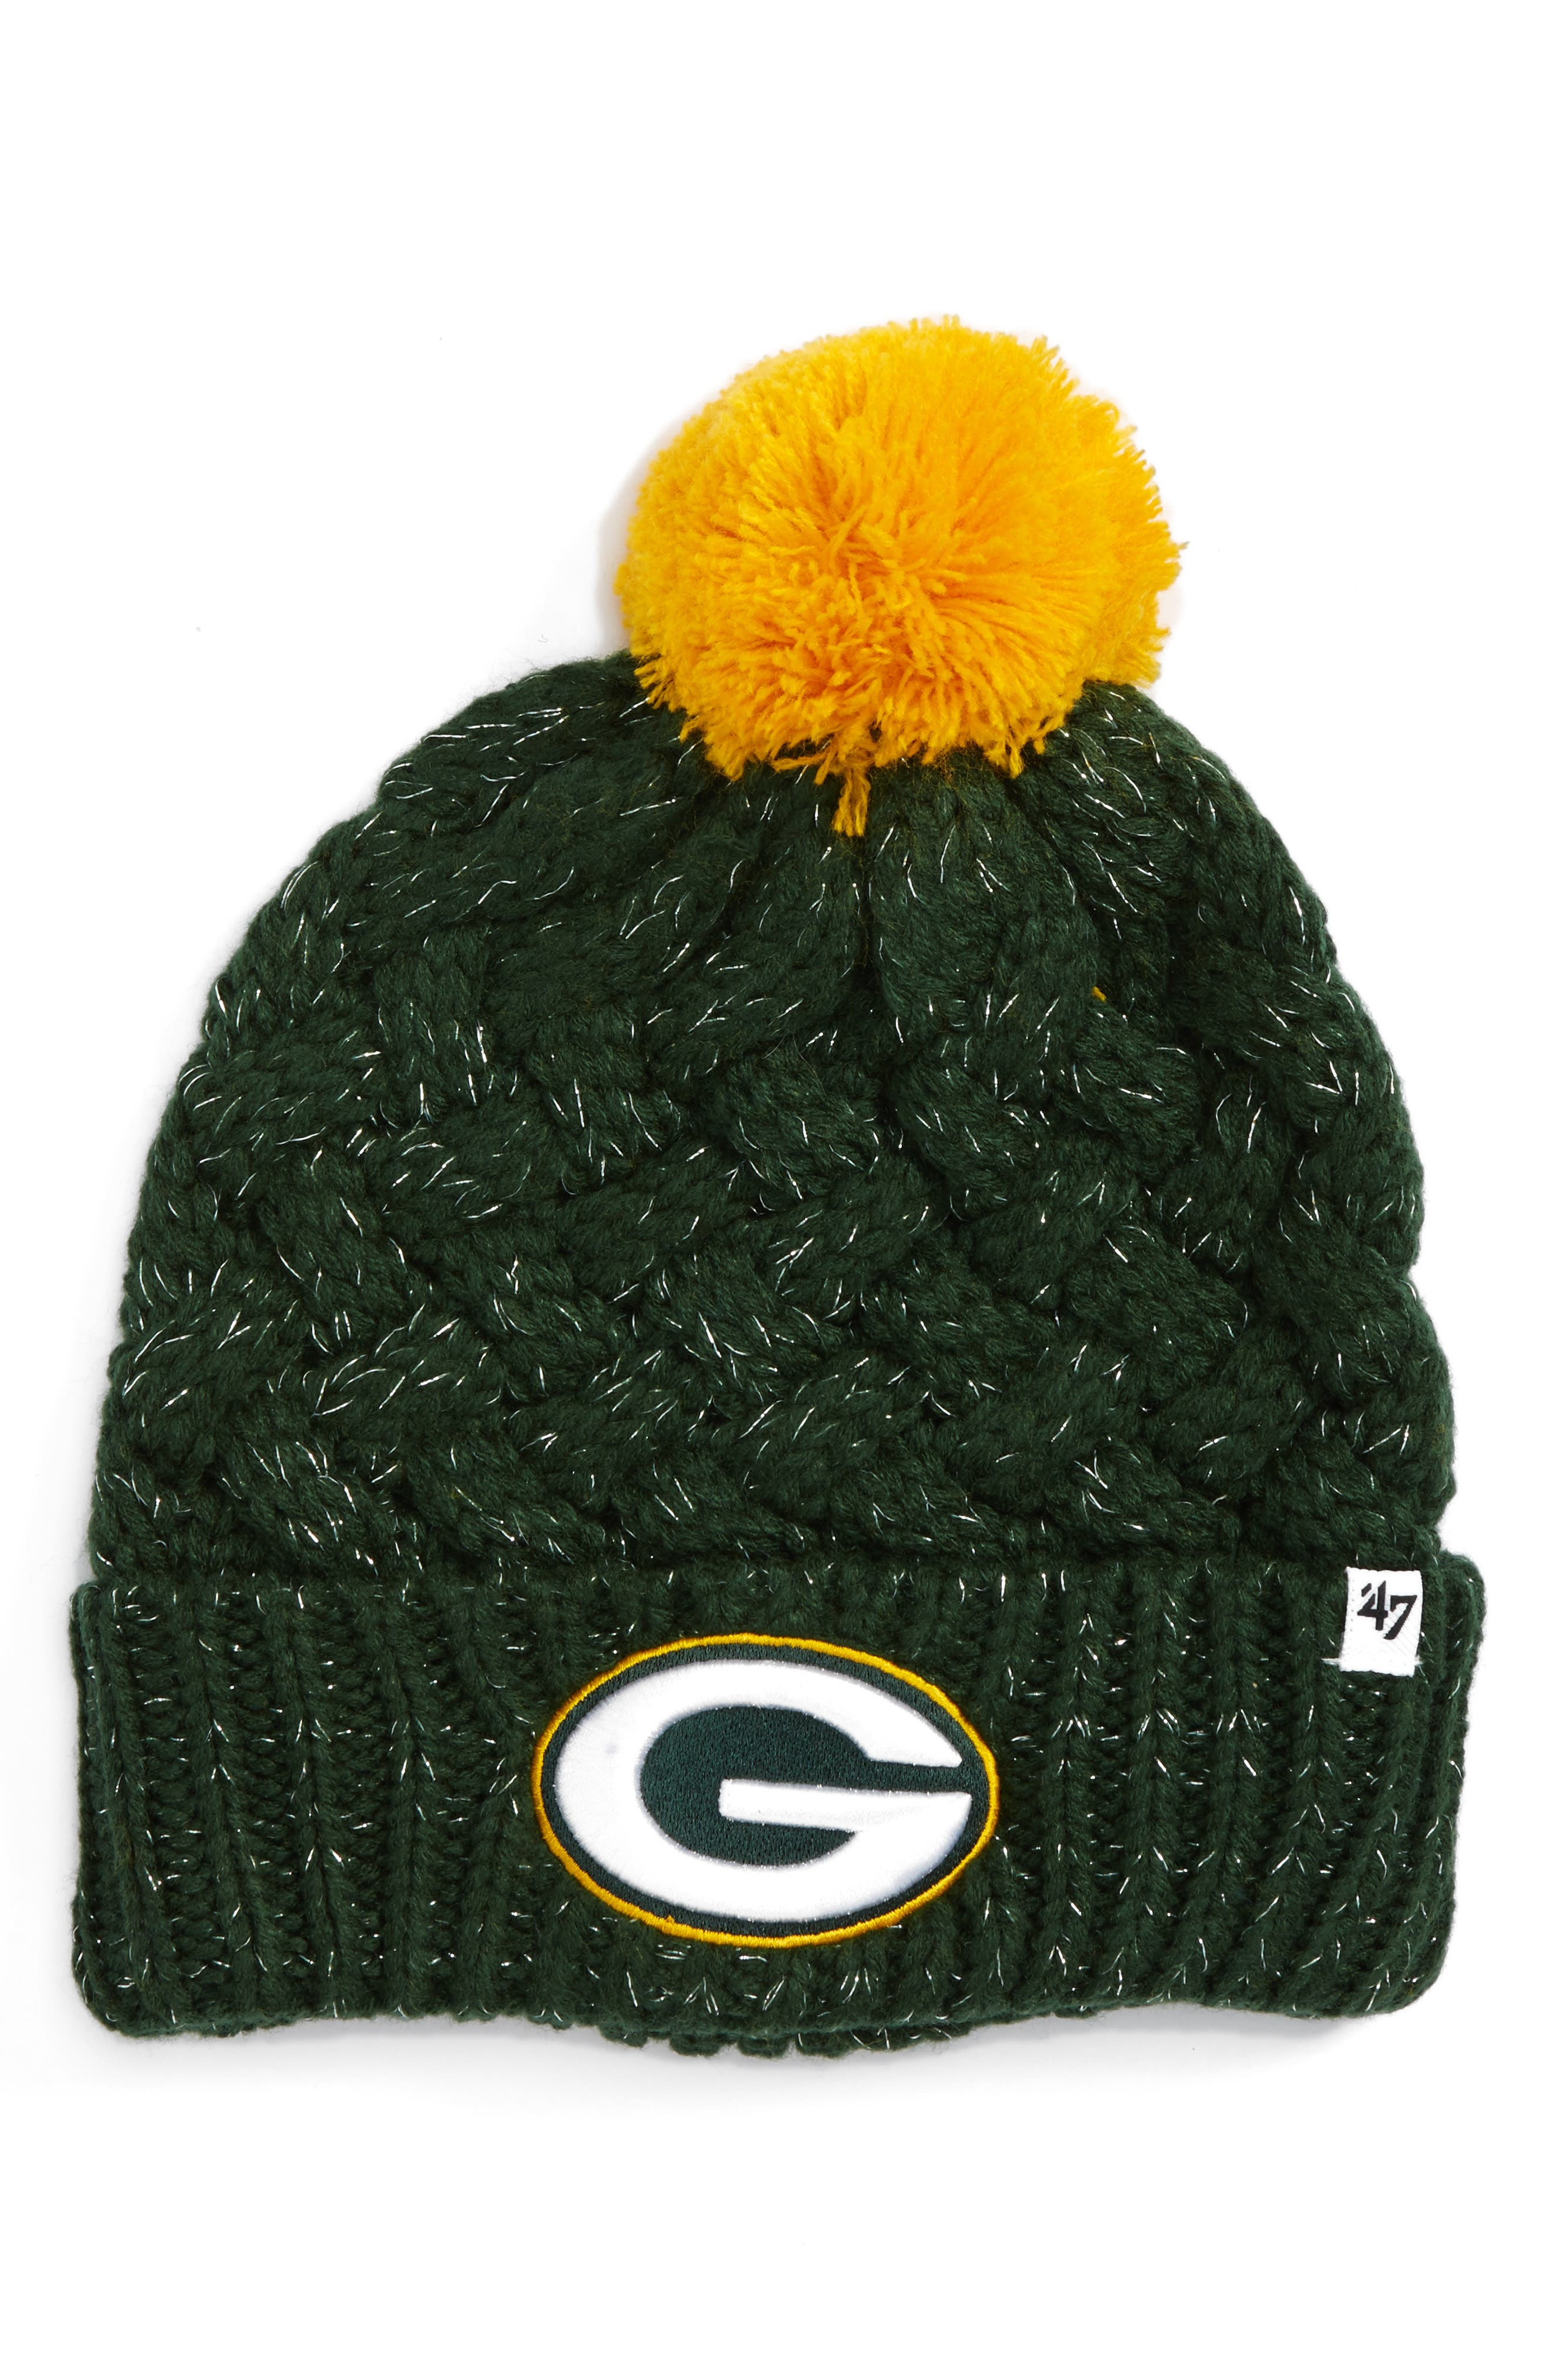 Alternate Image 1 Selected - '47 Fiona Green Bay Packers Pom Beanie